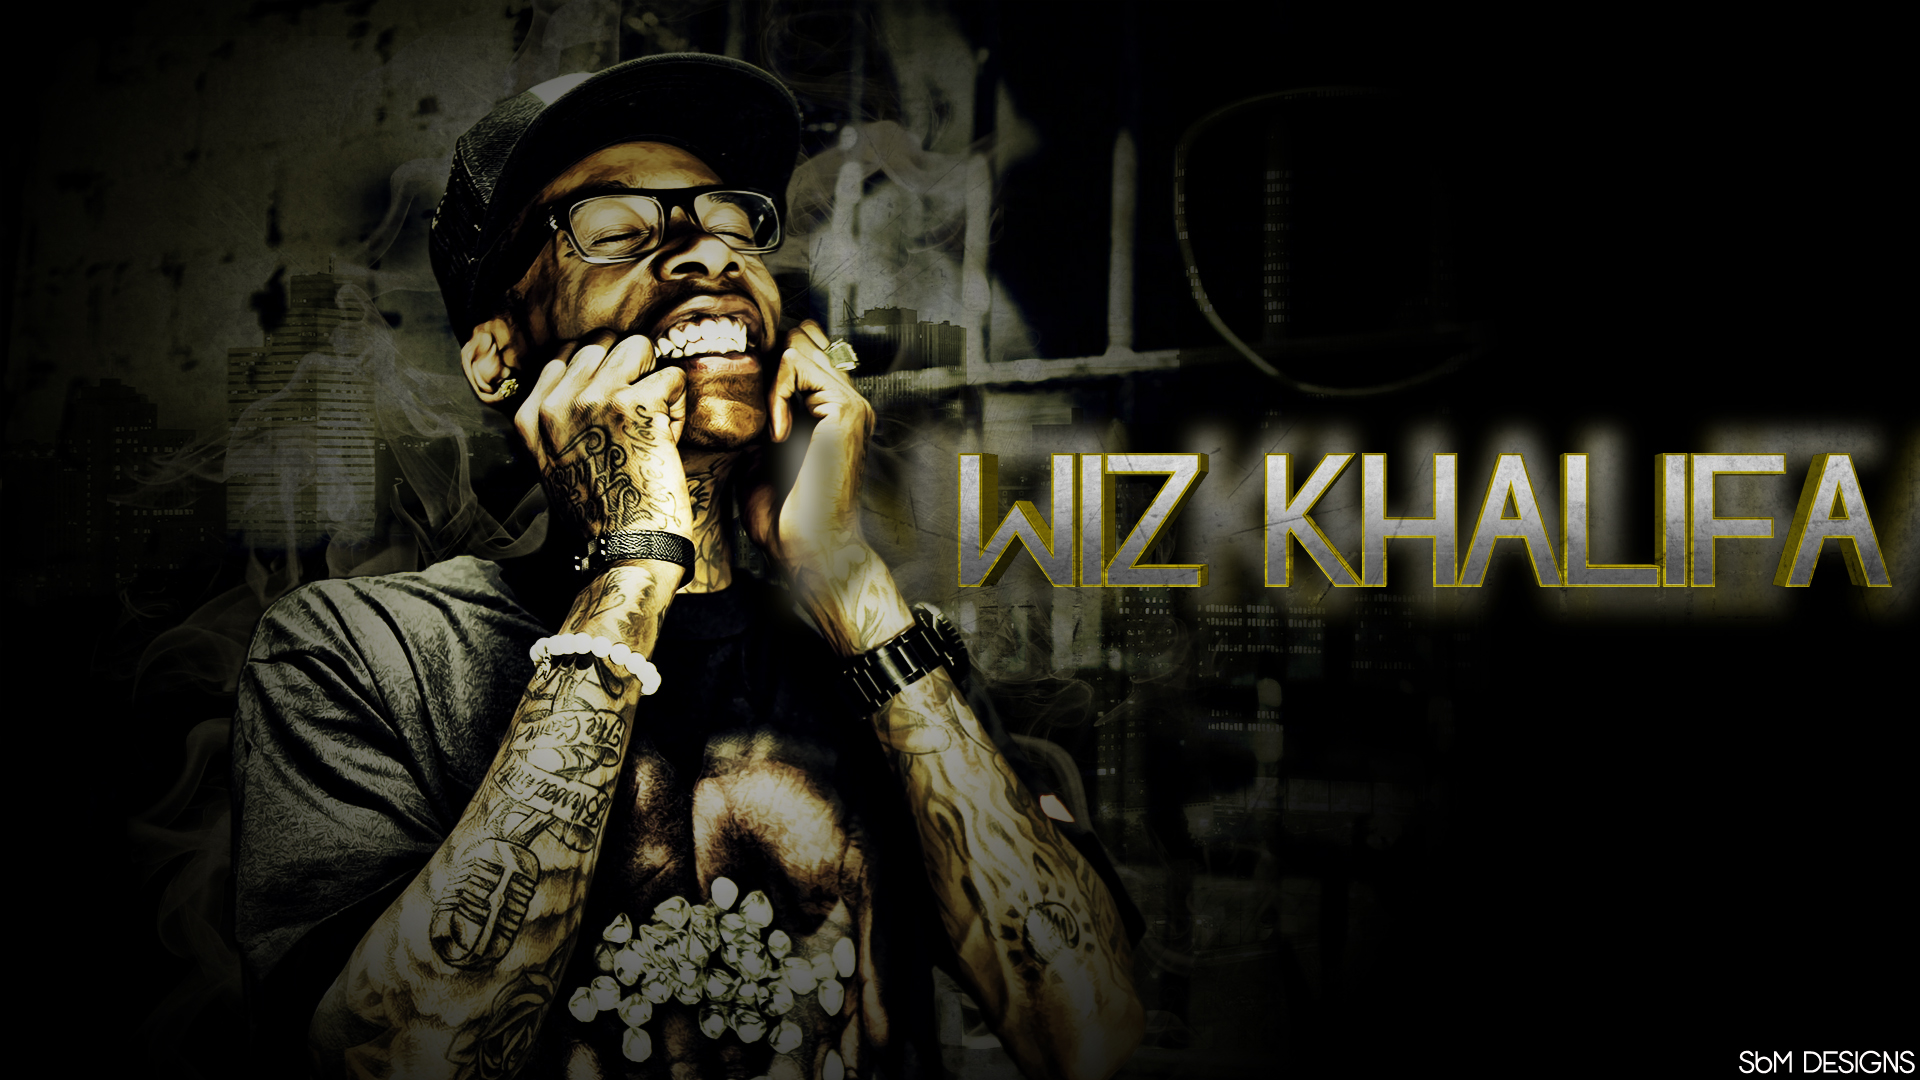 Wiz Khalifa Name 3 Rap Wallpapers 1920x1080